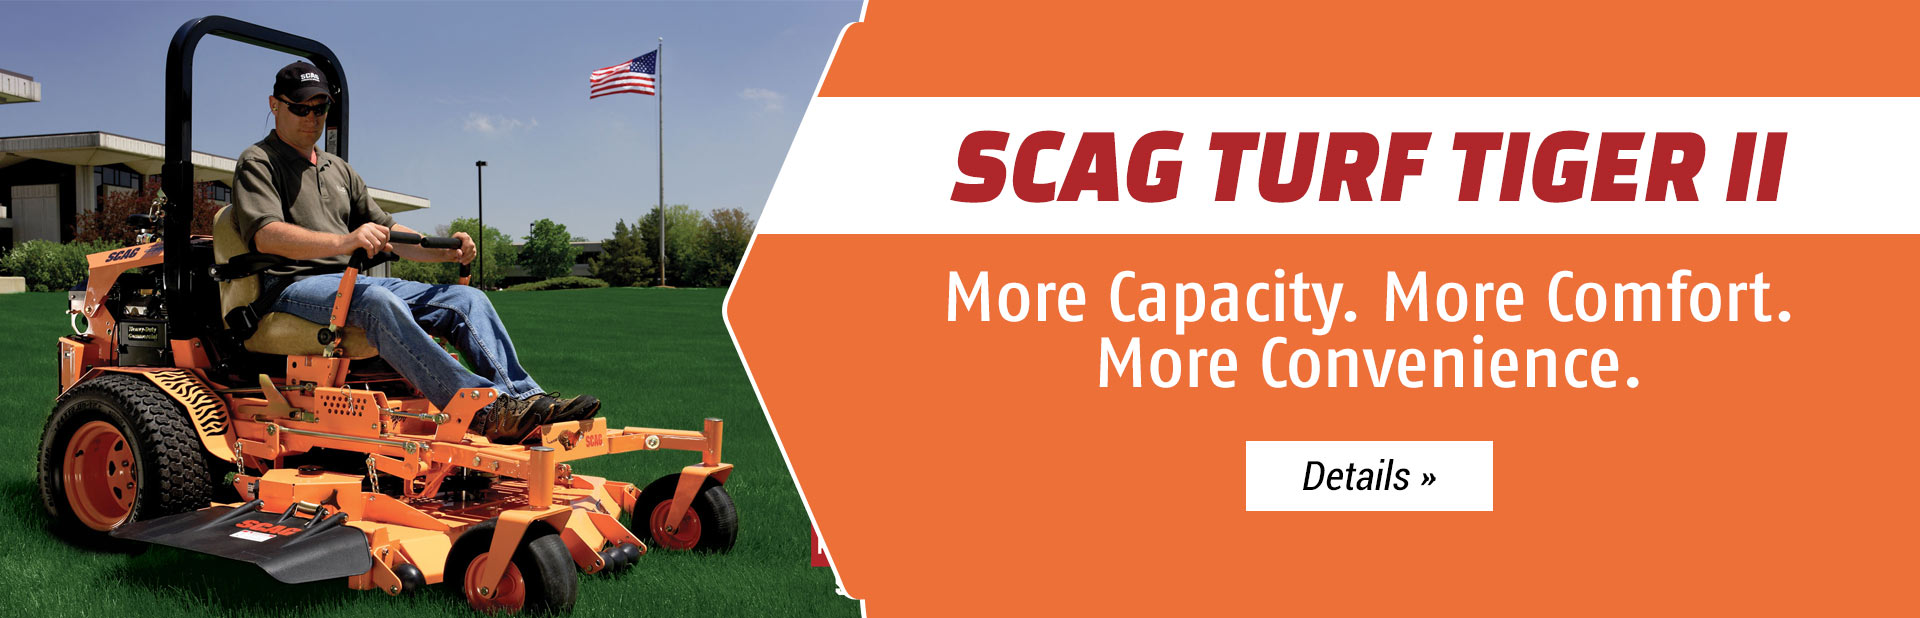 Scag Turf Tiger II: Click here to view the models.